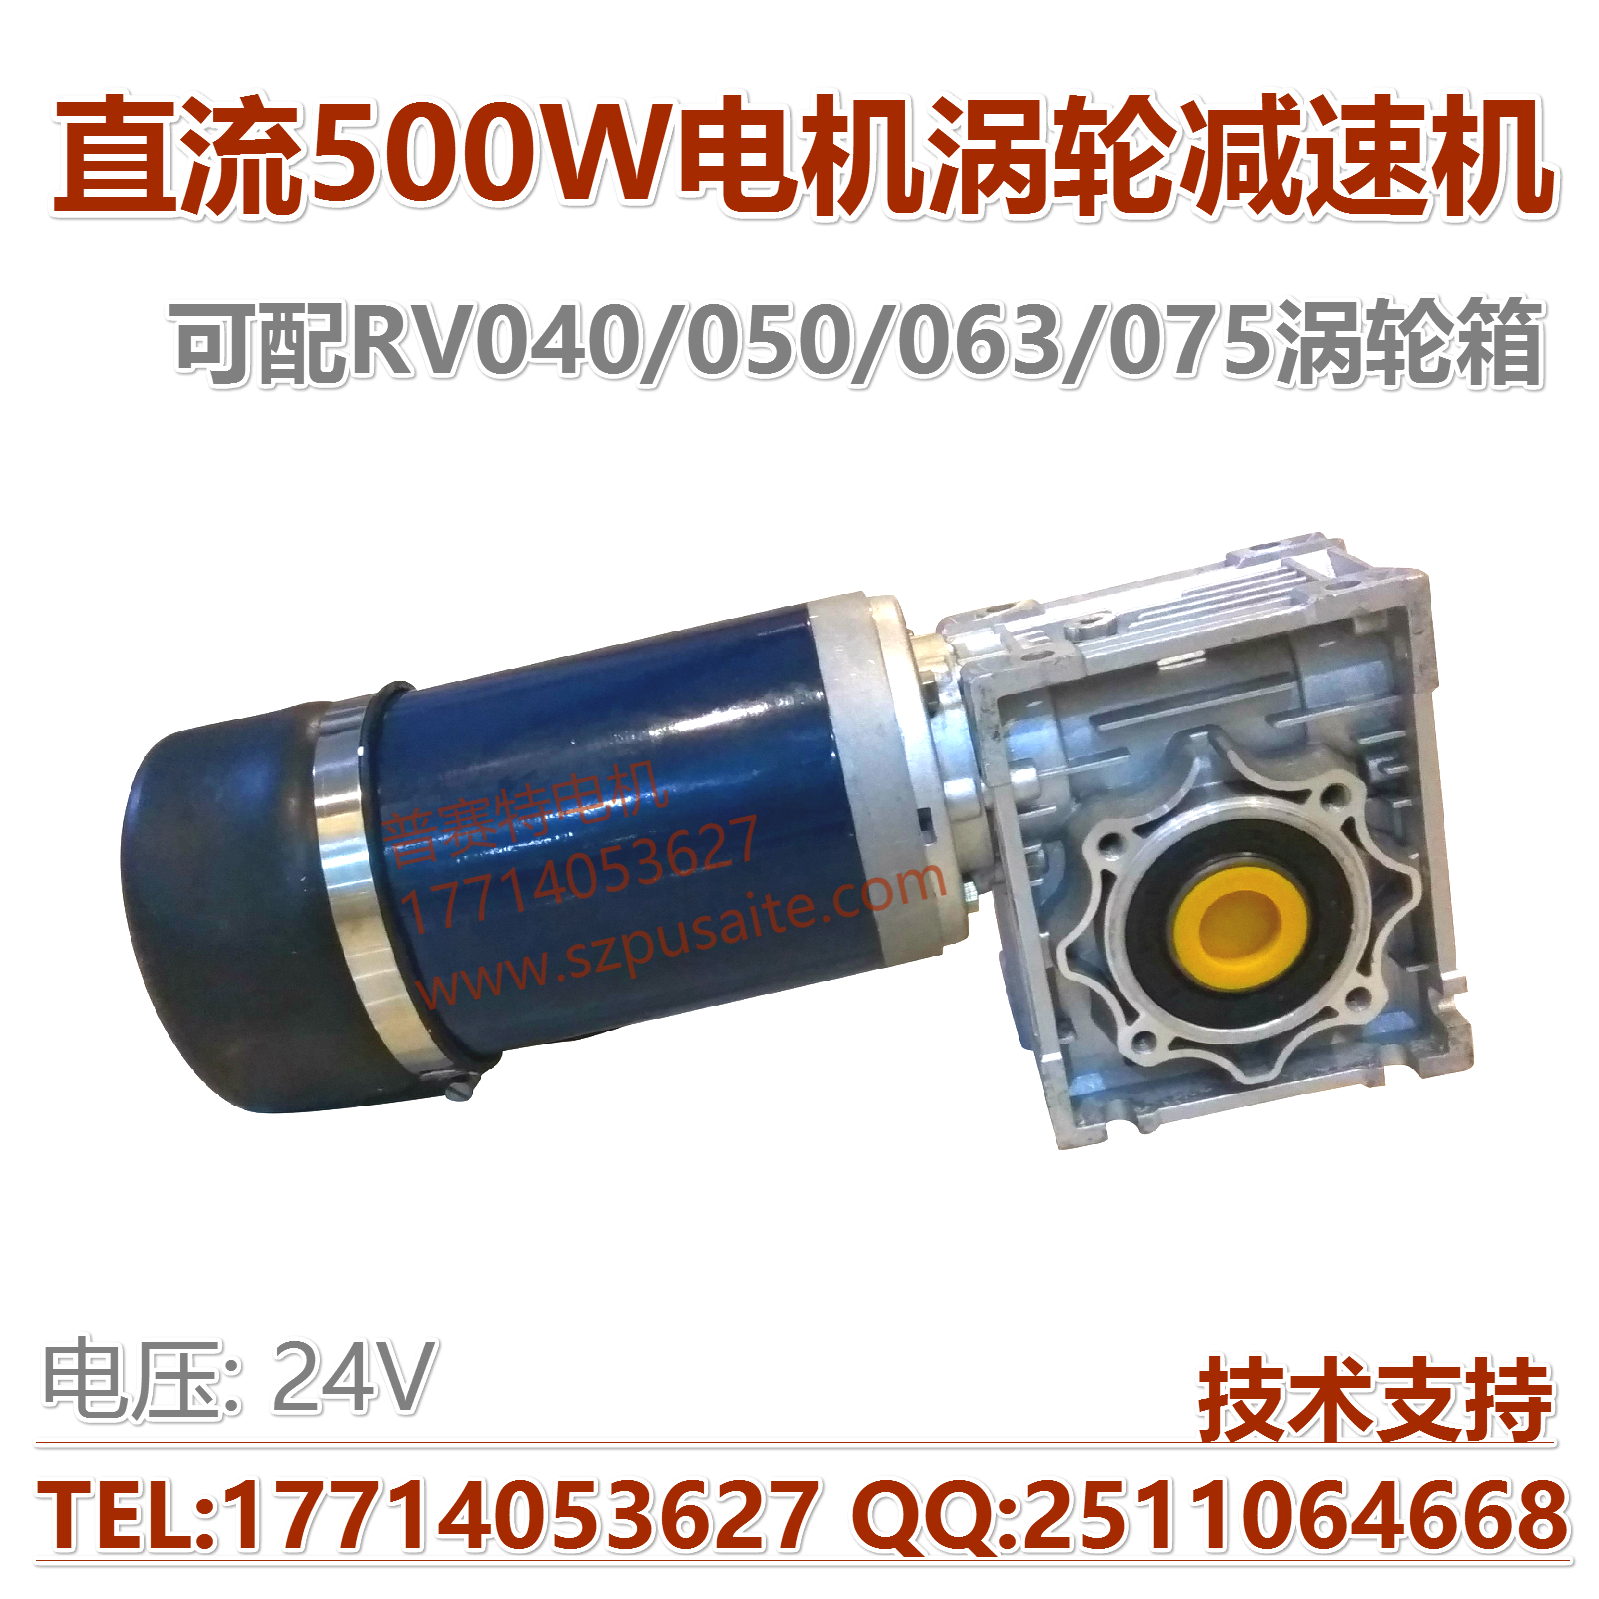 DC motor high power 24V 500W 90 degree out shaft turbine reducer lift motor large torque dc 6v 24v high speed micro motor 130 type shaft diameter 2mm 2pcs